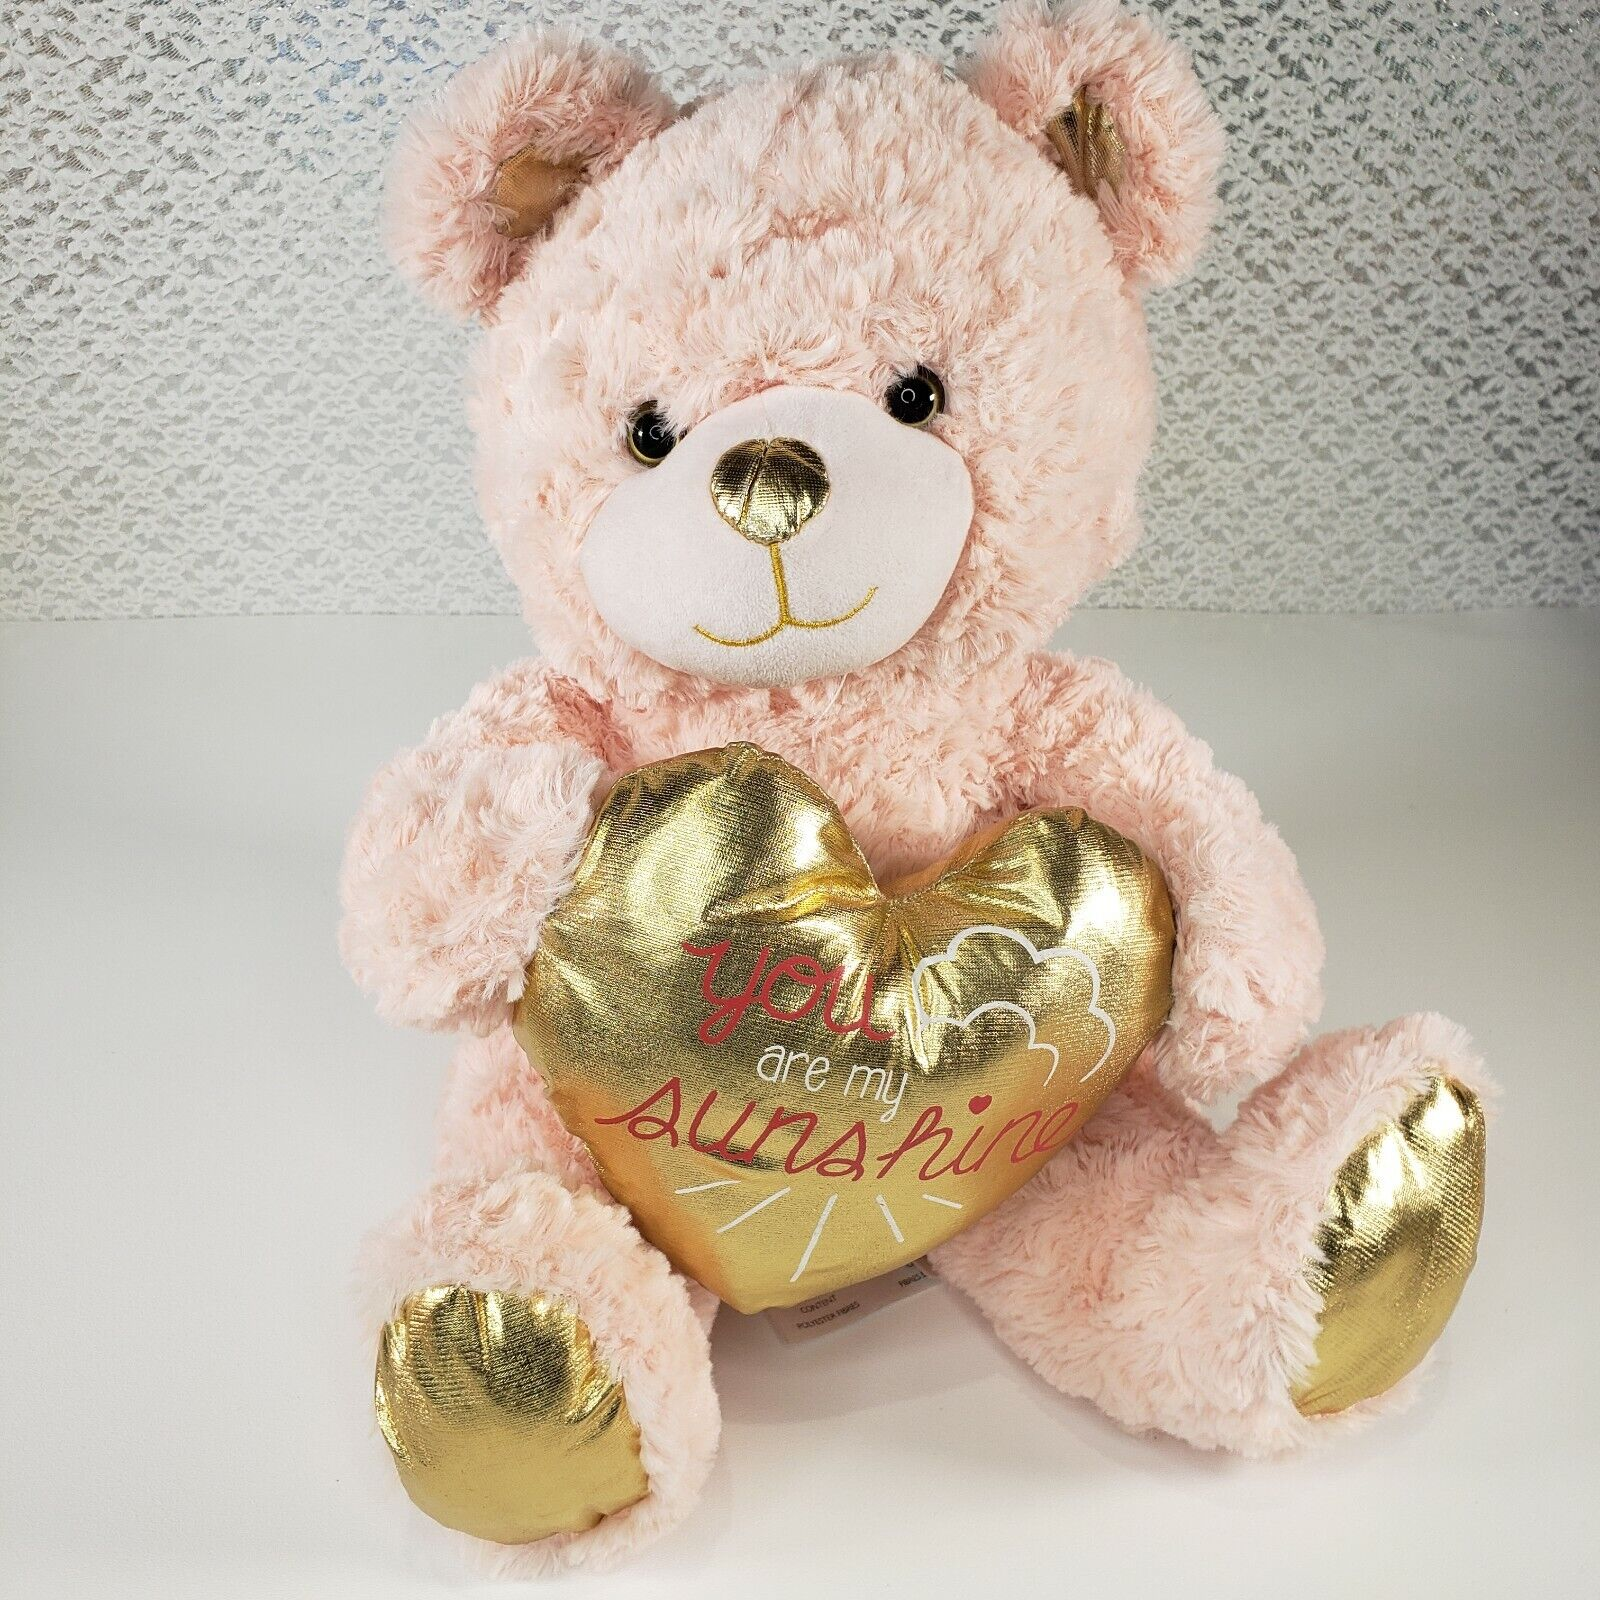 Animal Adventure Pink Teddy Bear Plush You Are My Sunshine Gold Heart Soft Toy - $18.99